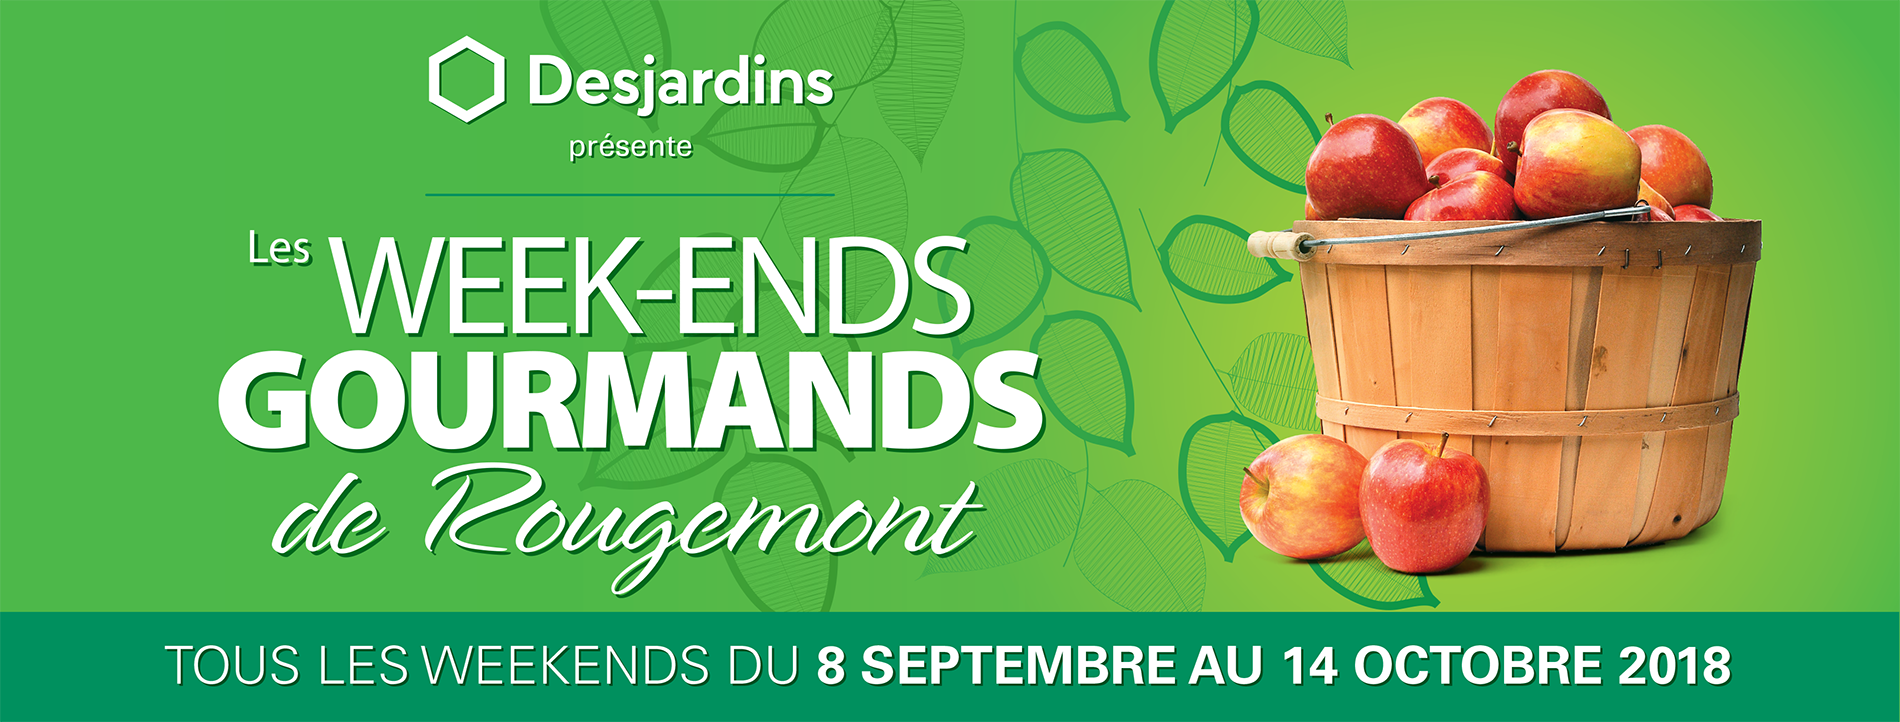 Les Week-Ends gourmands de Rougemont du 7 septembre au 14 octobre 2019